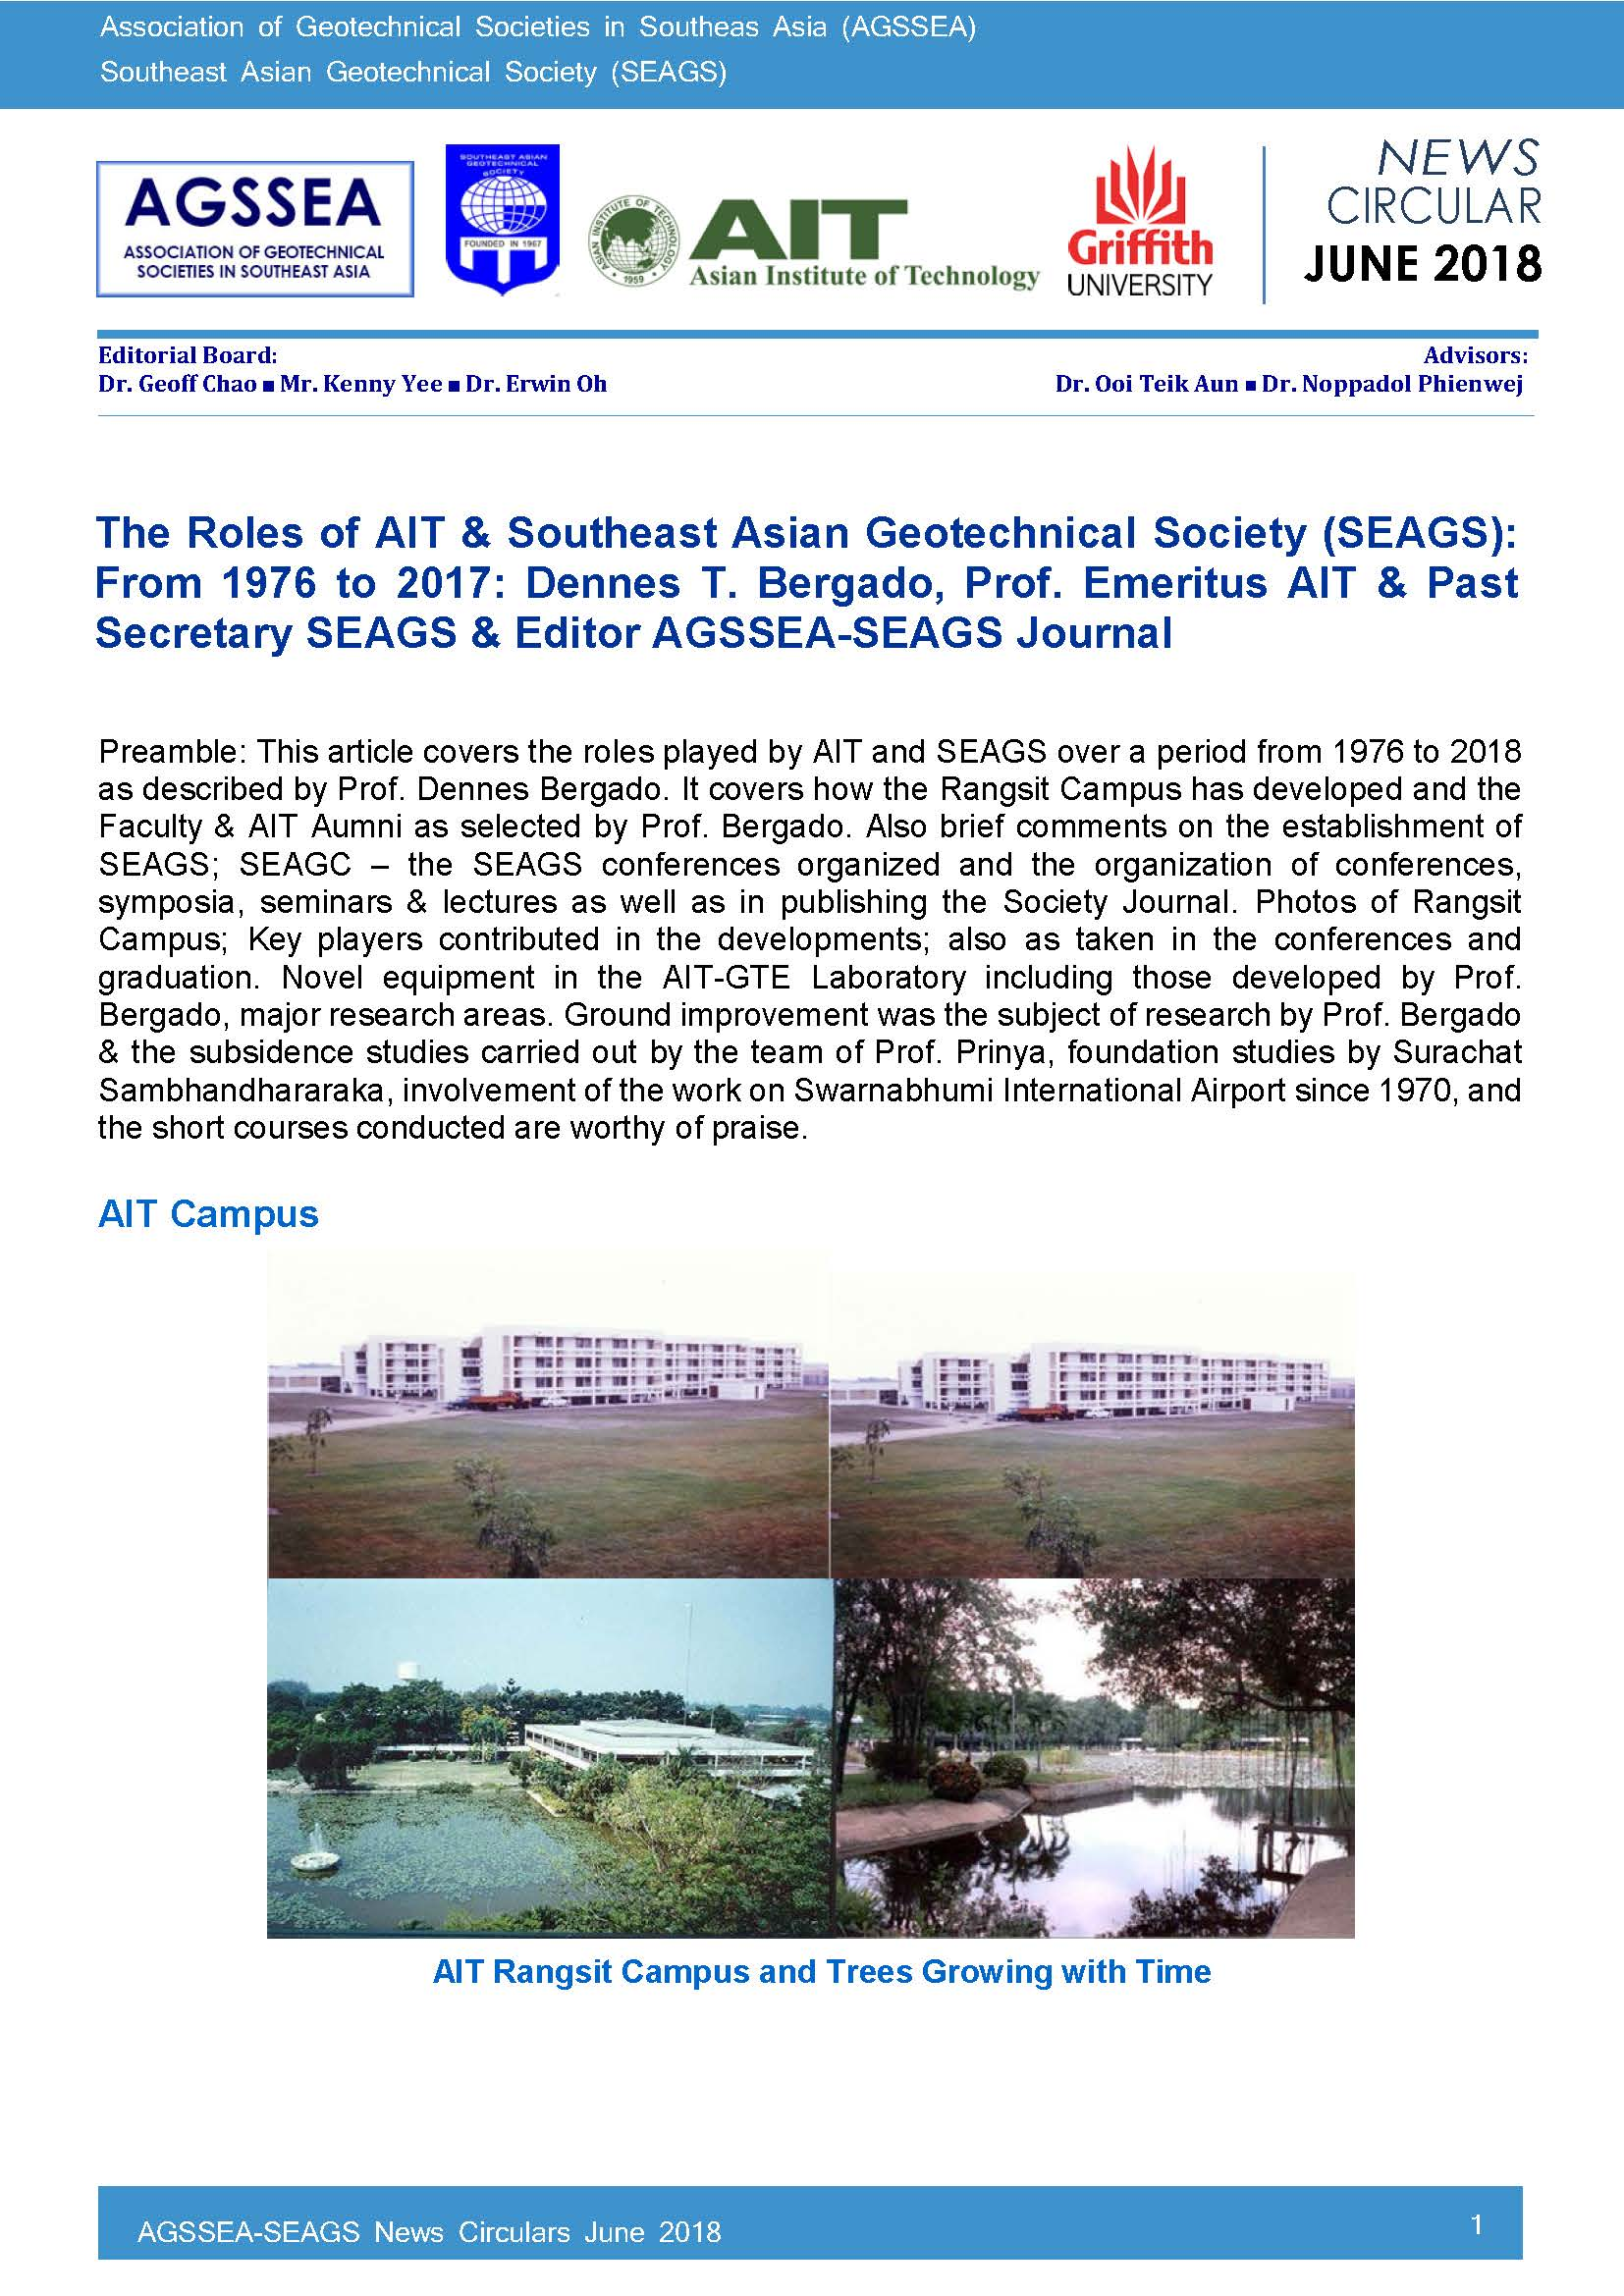 The Roles of AIT & Southeast Asian Geotechnical Society (SEAGS): From 1976 to 2017: D. T. Bergado, Prof. Emeritus AIT & Past Secretary SEAGS & Editor AGSSEA-SEAGS Journal  [cont.]   […]